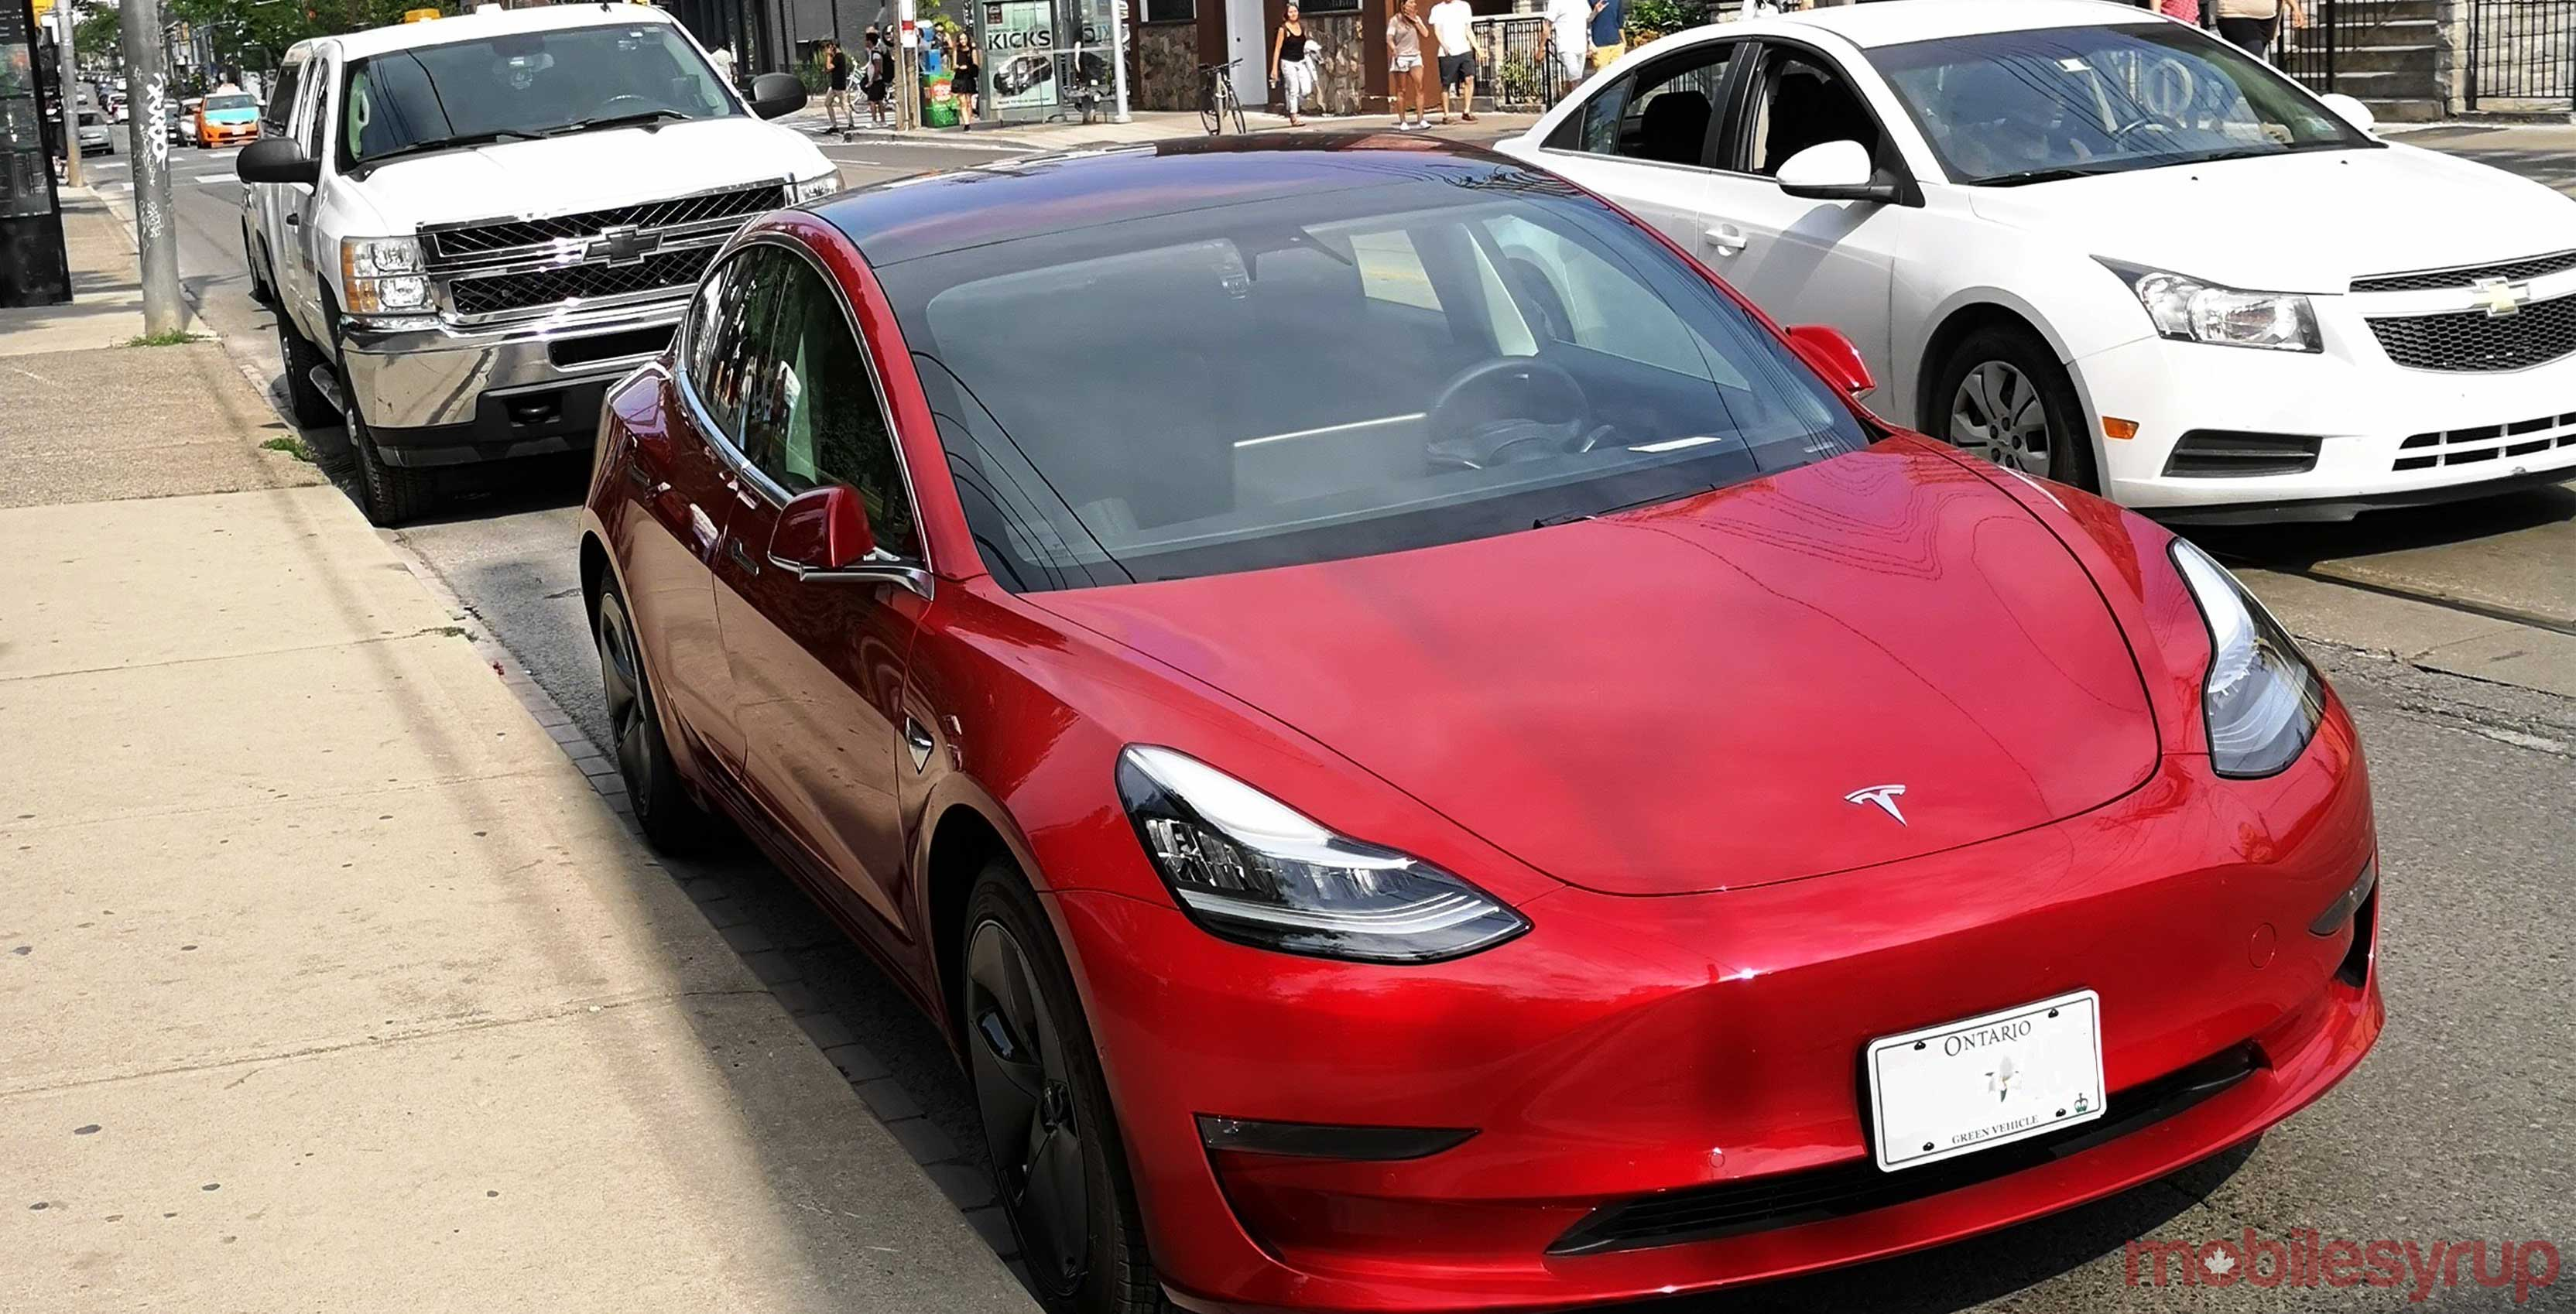 "Tesla ""srcset ="" https://cdn.mobilesyrup.com/wp-content/uploads/2018/07/Tesla-model-3-copy-2.jpg 3328w, https://cdn.mobilesyrup.com/wp- content / uploads / 2018/07 / Tesla-model-3-copy-2-300x153.jpg 300w, https://cdn.mobilesyrup.com/wp-content/uploads/2018/07/Tesla-model-3-copy -2-768x392.jpg 768w, https://cdn.mobilesyrup.com/wp-content/uploads/2018/07/Tesla-model-3-copy-2-1024x522.jpg 1024w ""sizes ="" (max-width : 3328px) 100vw, 3328px ""/></div></div><section class="